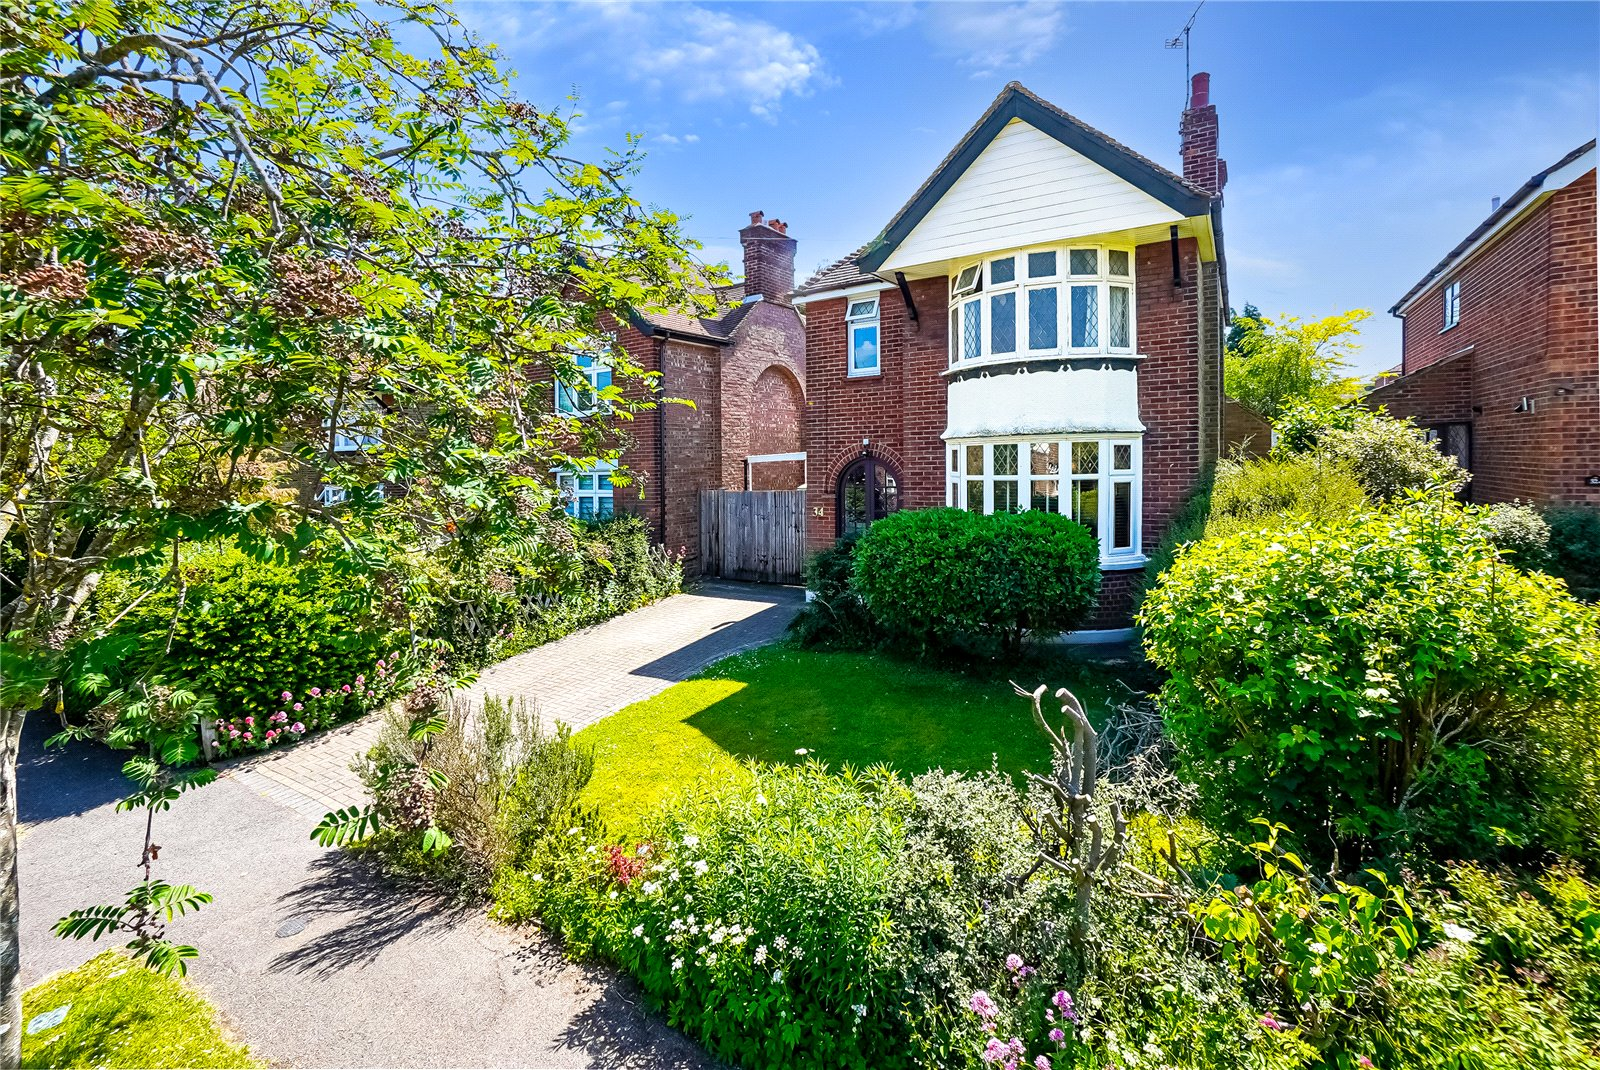 3 bed house for sale in Cranborne Avenue, Maidstone, ME15